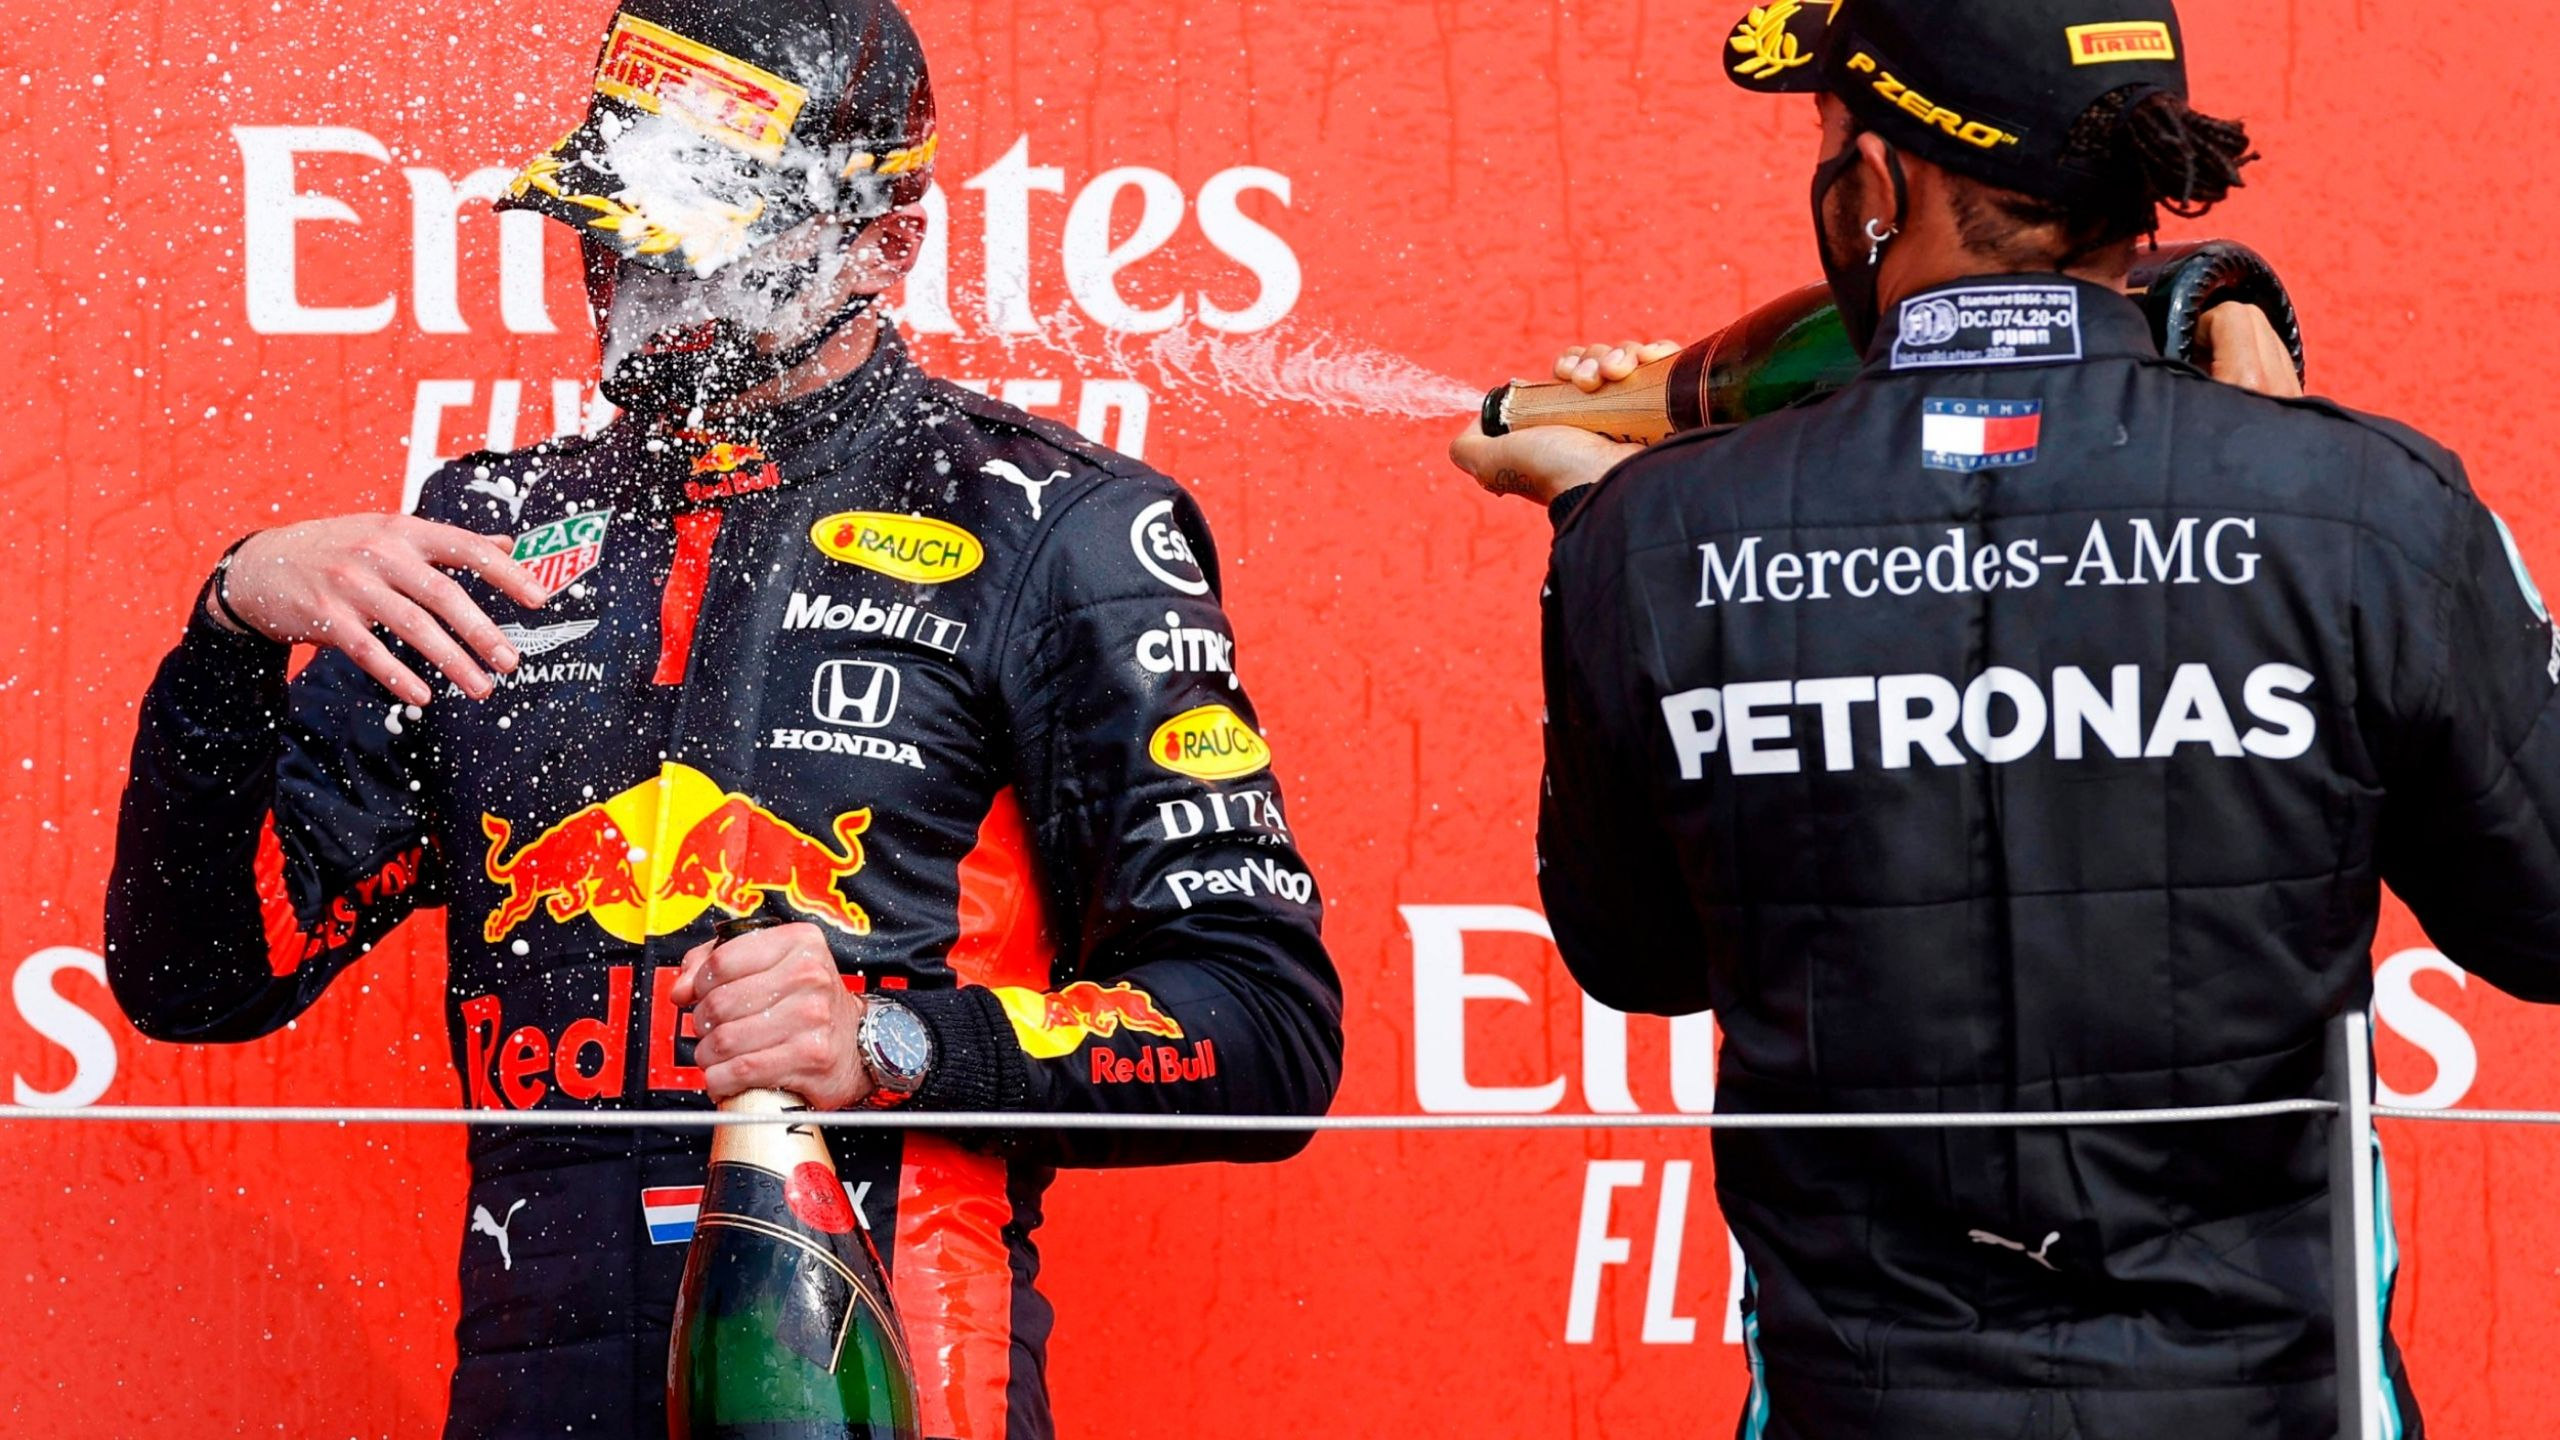 """""""I hope you're never my team boss!"""" - Lewis Hamilton lays into Max Verstappen after the latter's controversial comments on Romain Grosjean crash"""